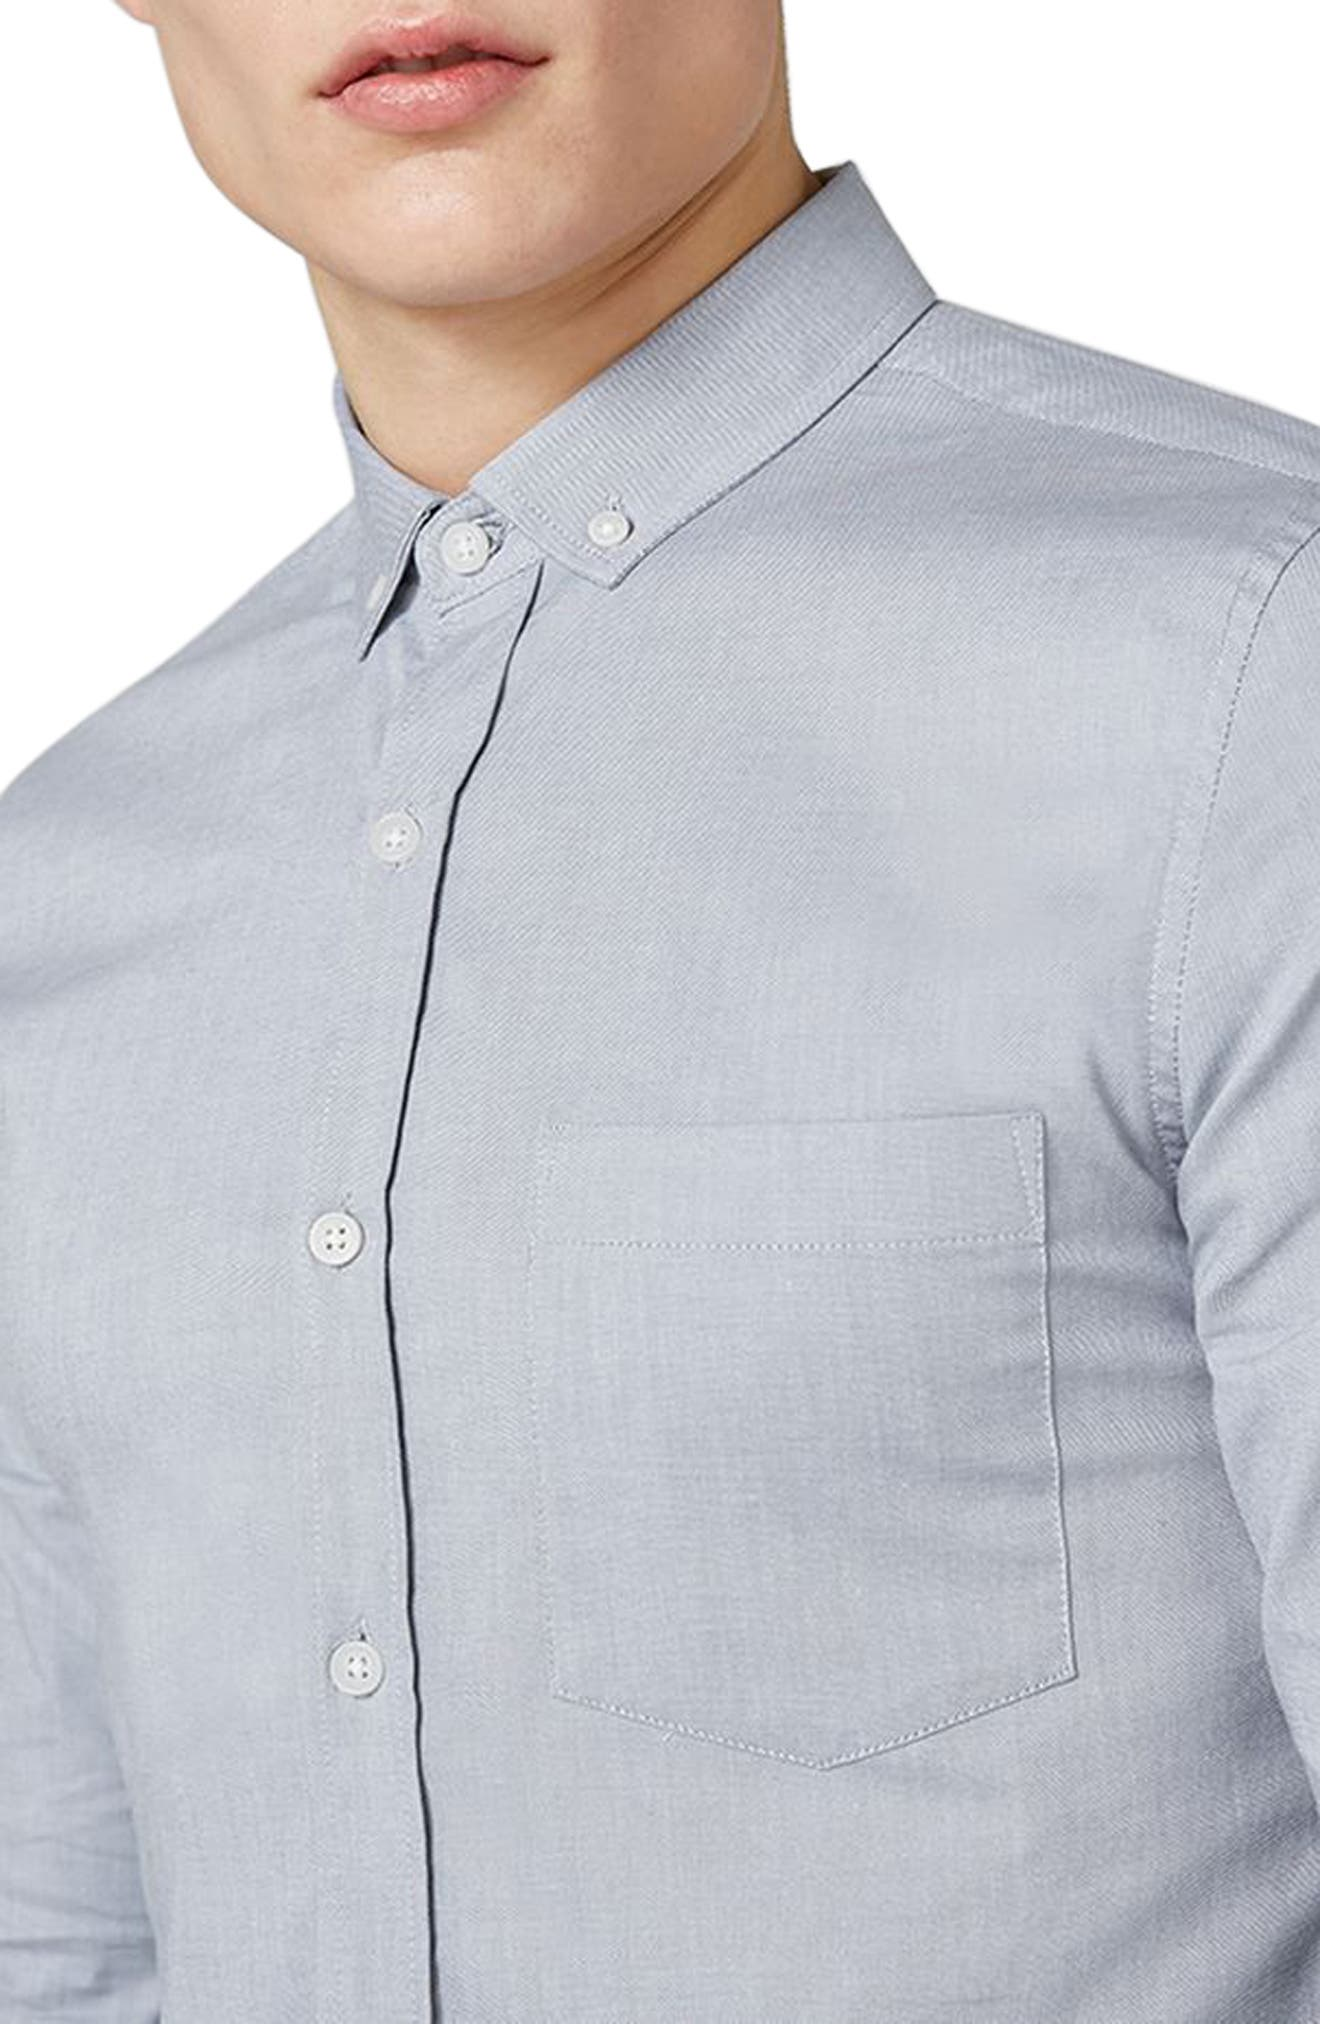 Muscle Fit Oxford Shirt,                             Alternate thumbnail 3, color,                             GREY